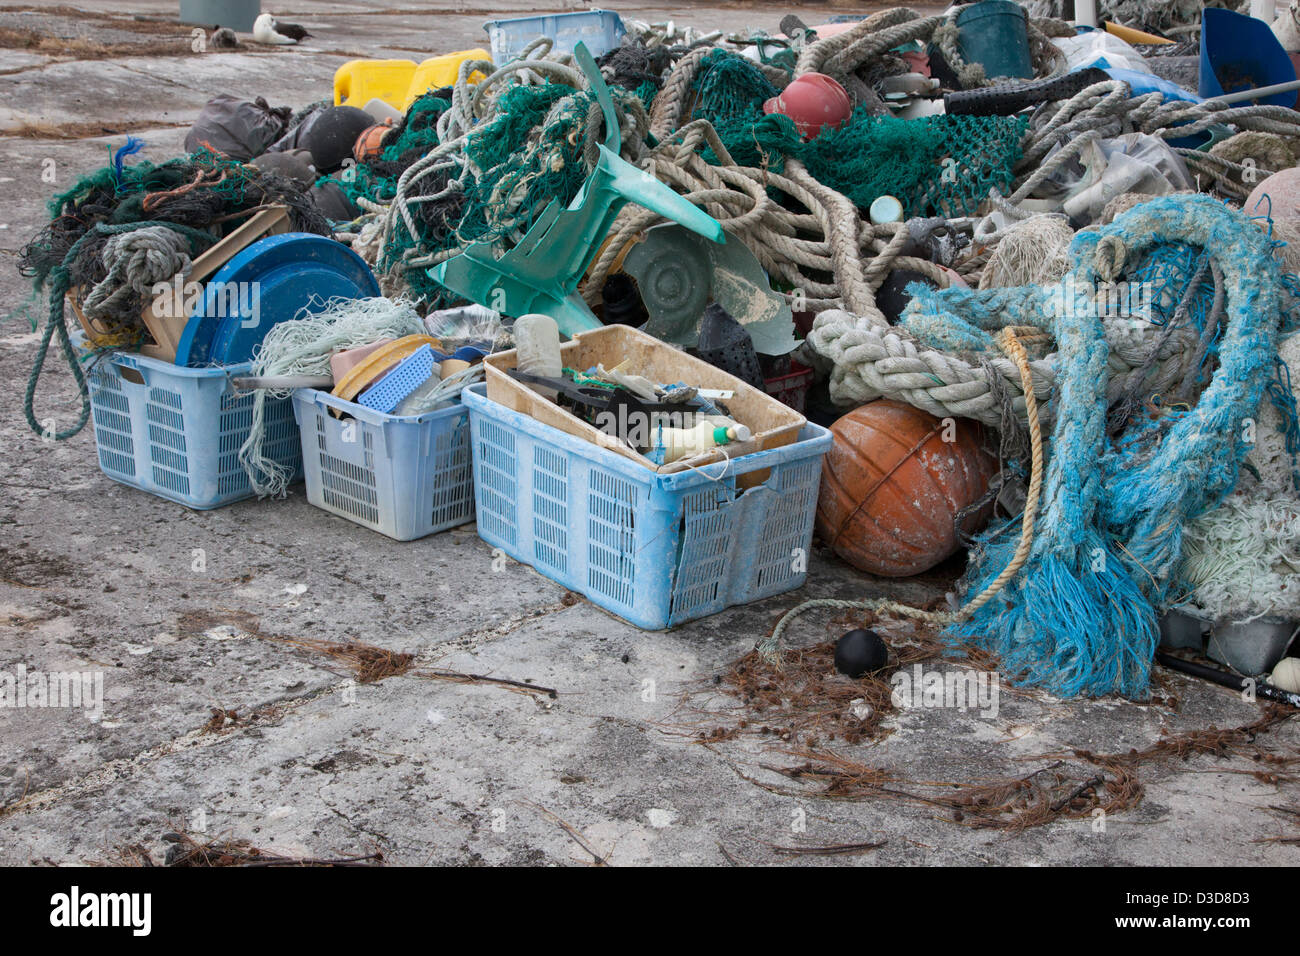 Marine debris brought to Midway Atoll by ocean currents then collected to be shipped off island for recycling or - Stock Image